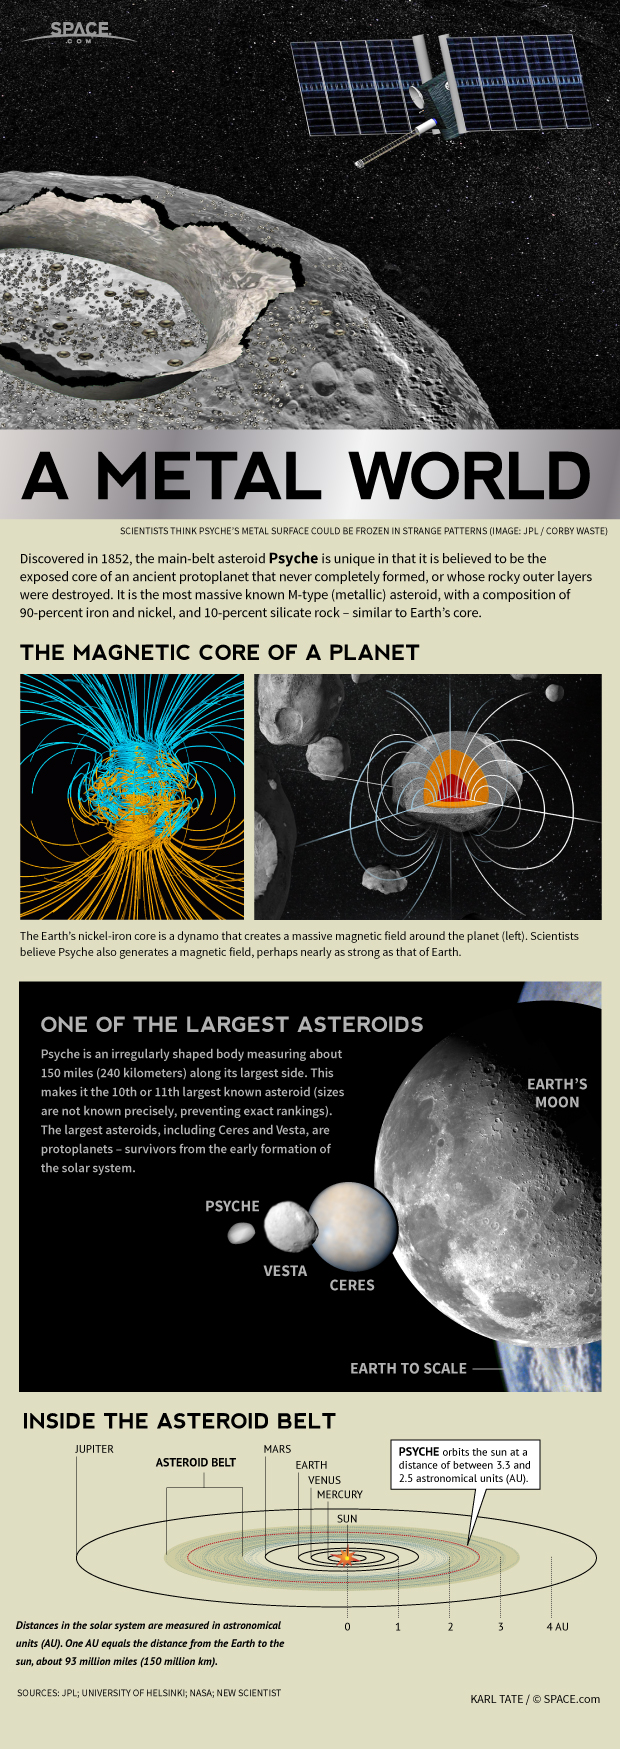 Psyche, one of the largest asteroids, is made mostly of metal.